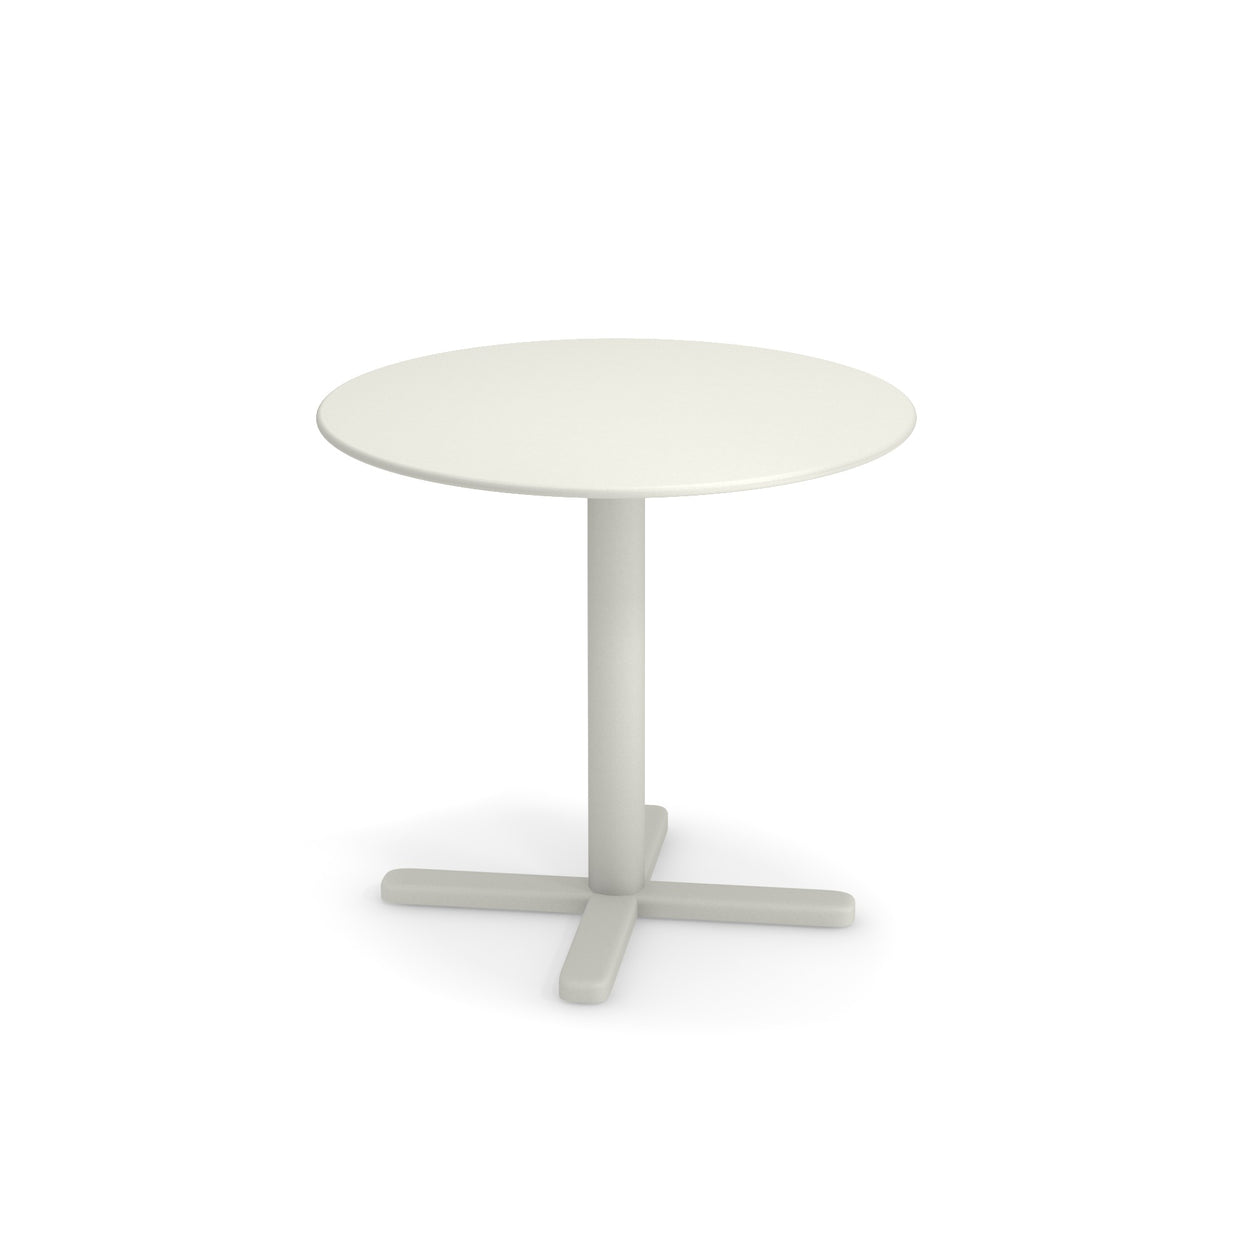 EMU Darwin Round Folding Table (2 Sizes)